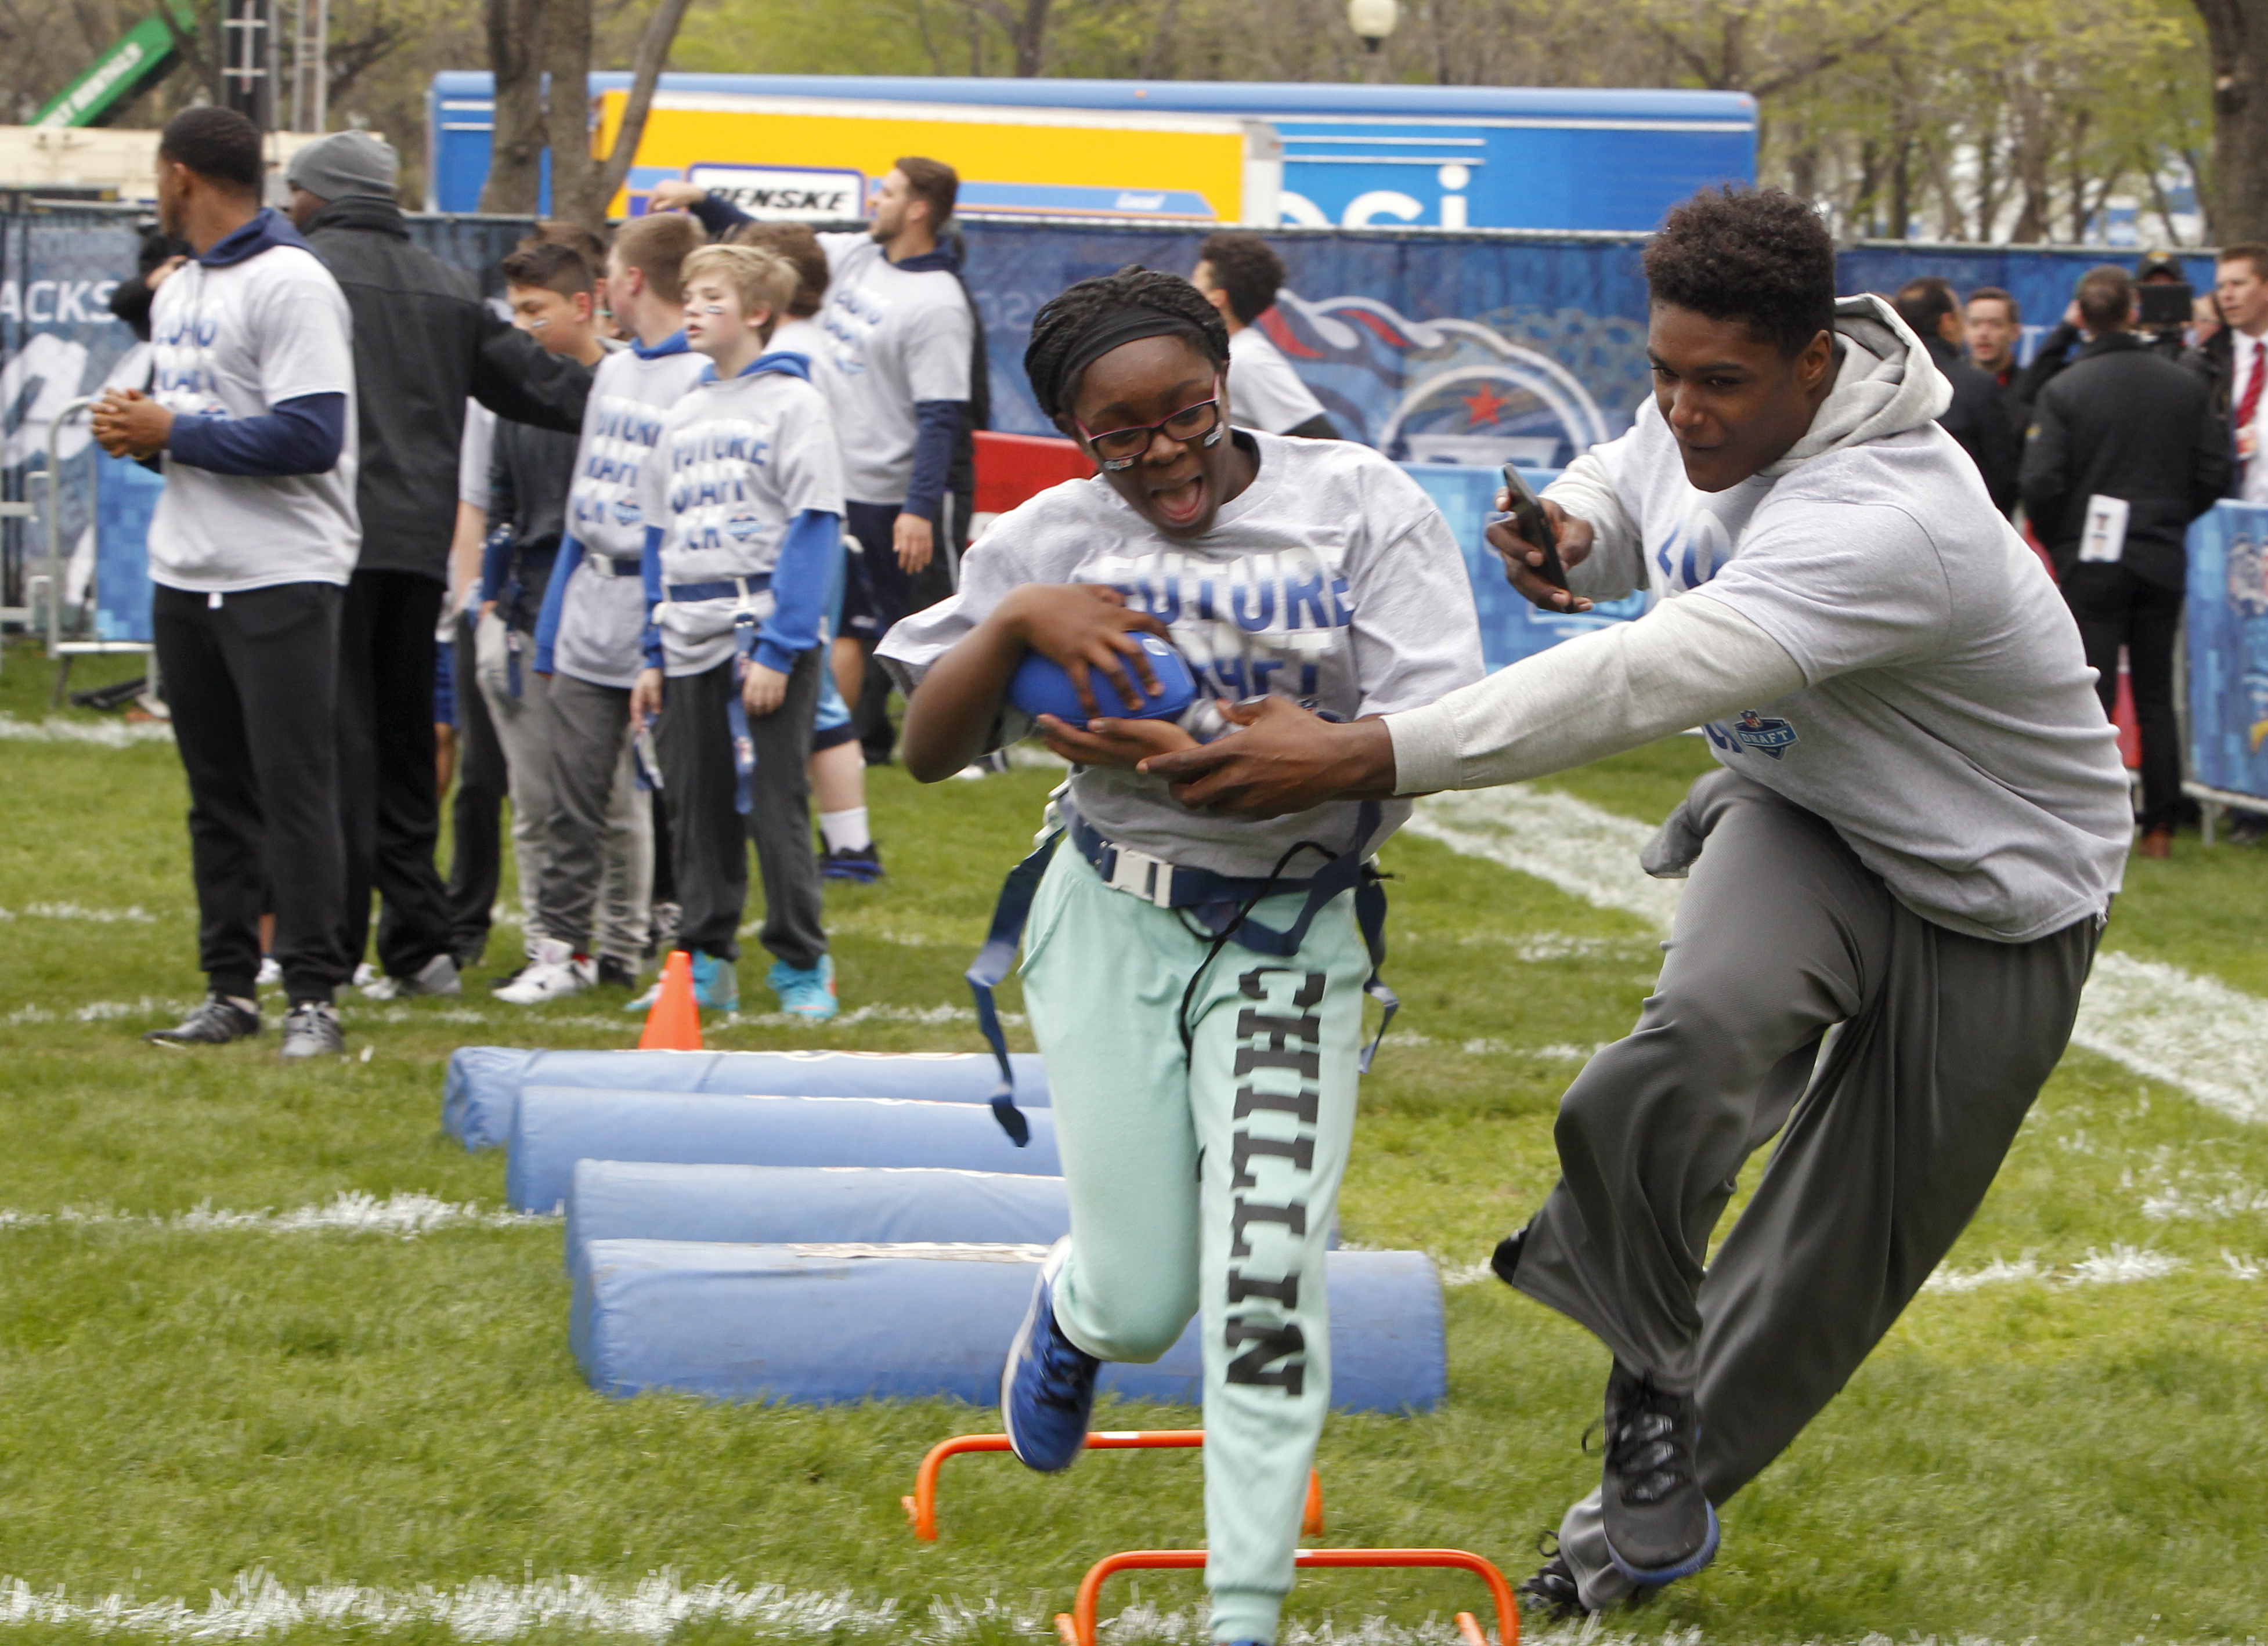 UCLA's Myles Jack, right, runs a drill with children during an NFL Play 60 event at Grant Park, Wednesday, April 27, 2016, in Chicago before Thursday's first round of the NFL football draft. (AP Photo/Kiichiro Sato)